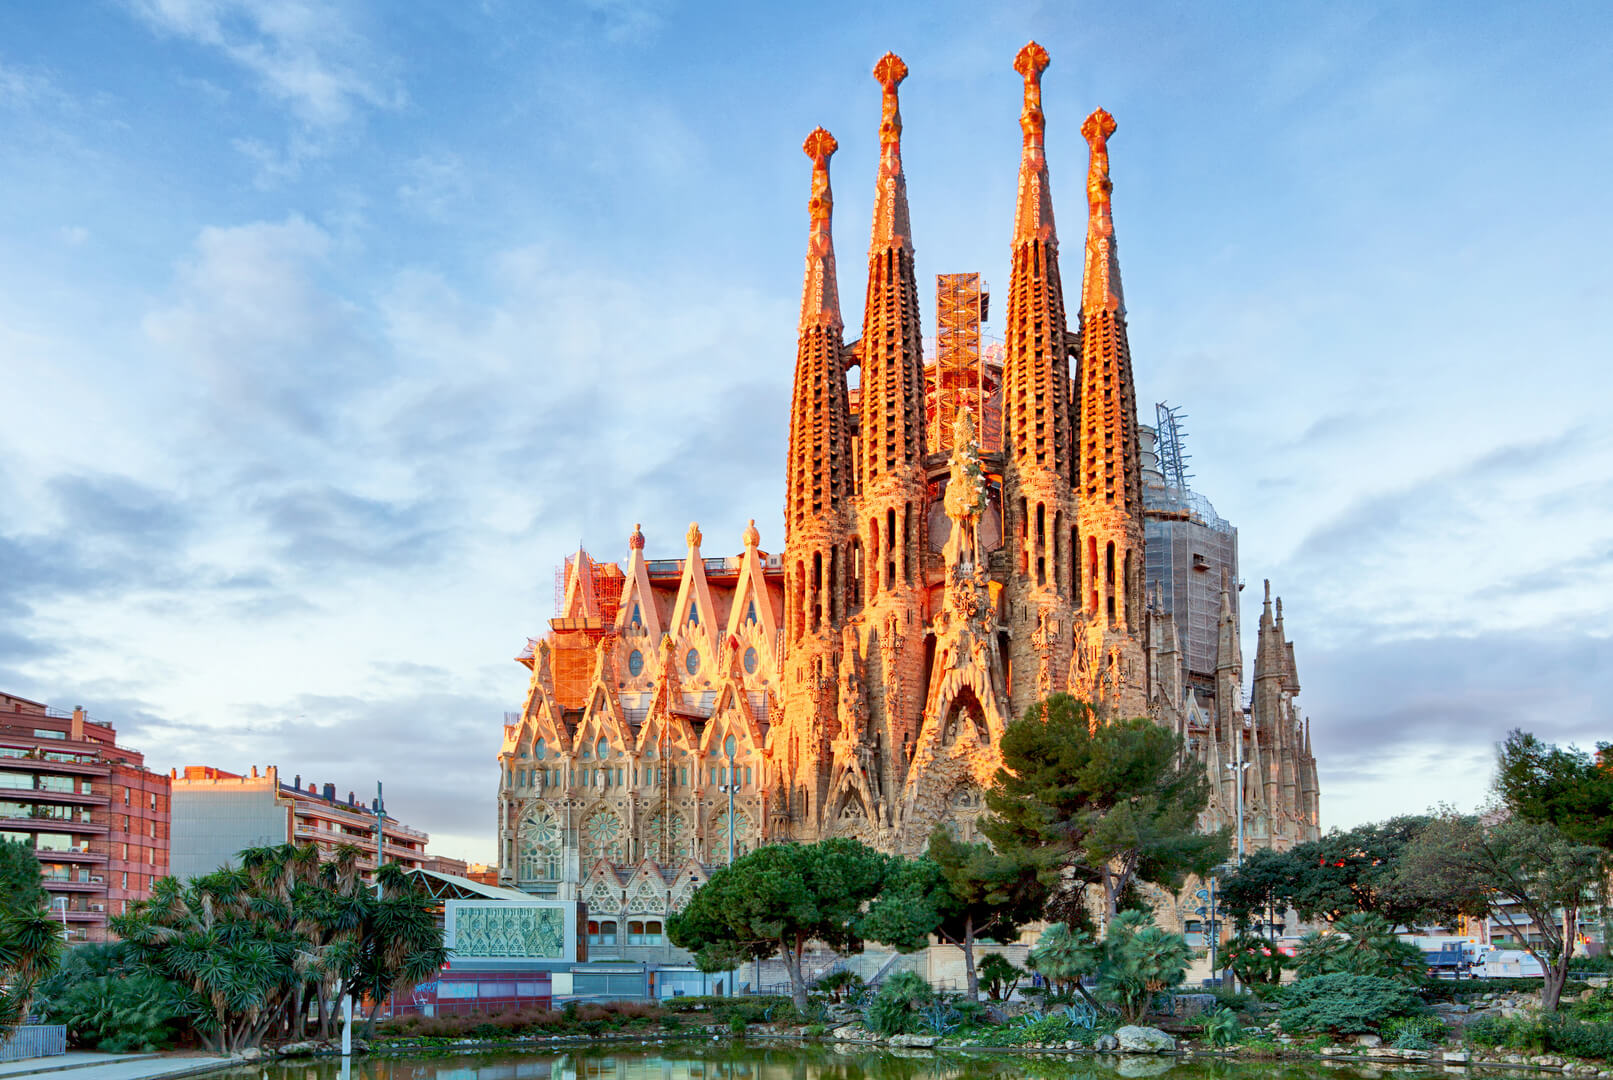 La Sagrada Familia - the impressive cathedral designed by Gaudi, which is being build since 19 March 1882 and is not finished yet